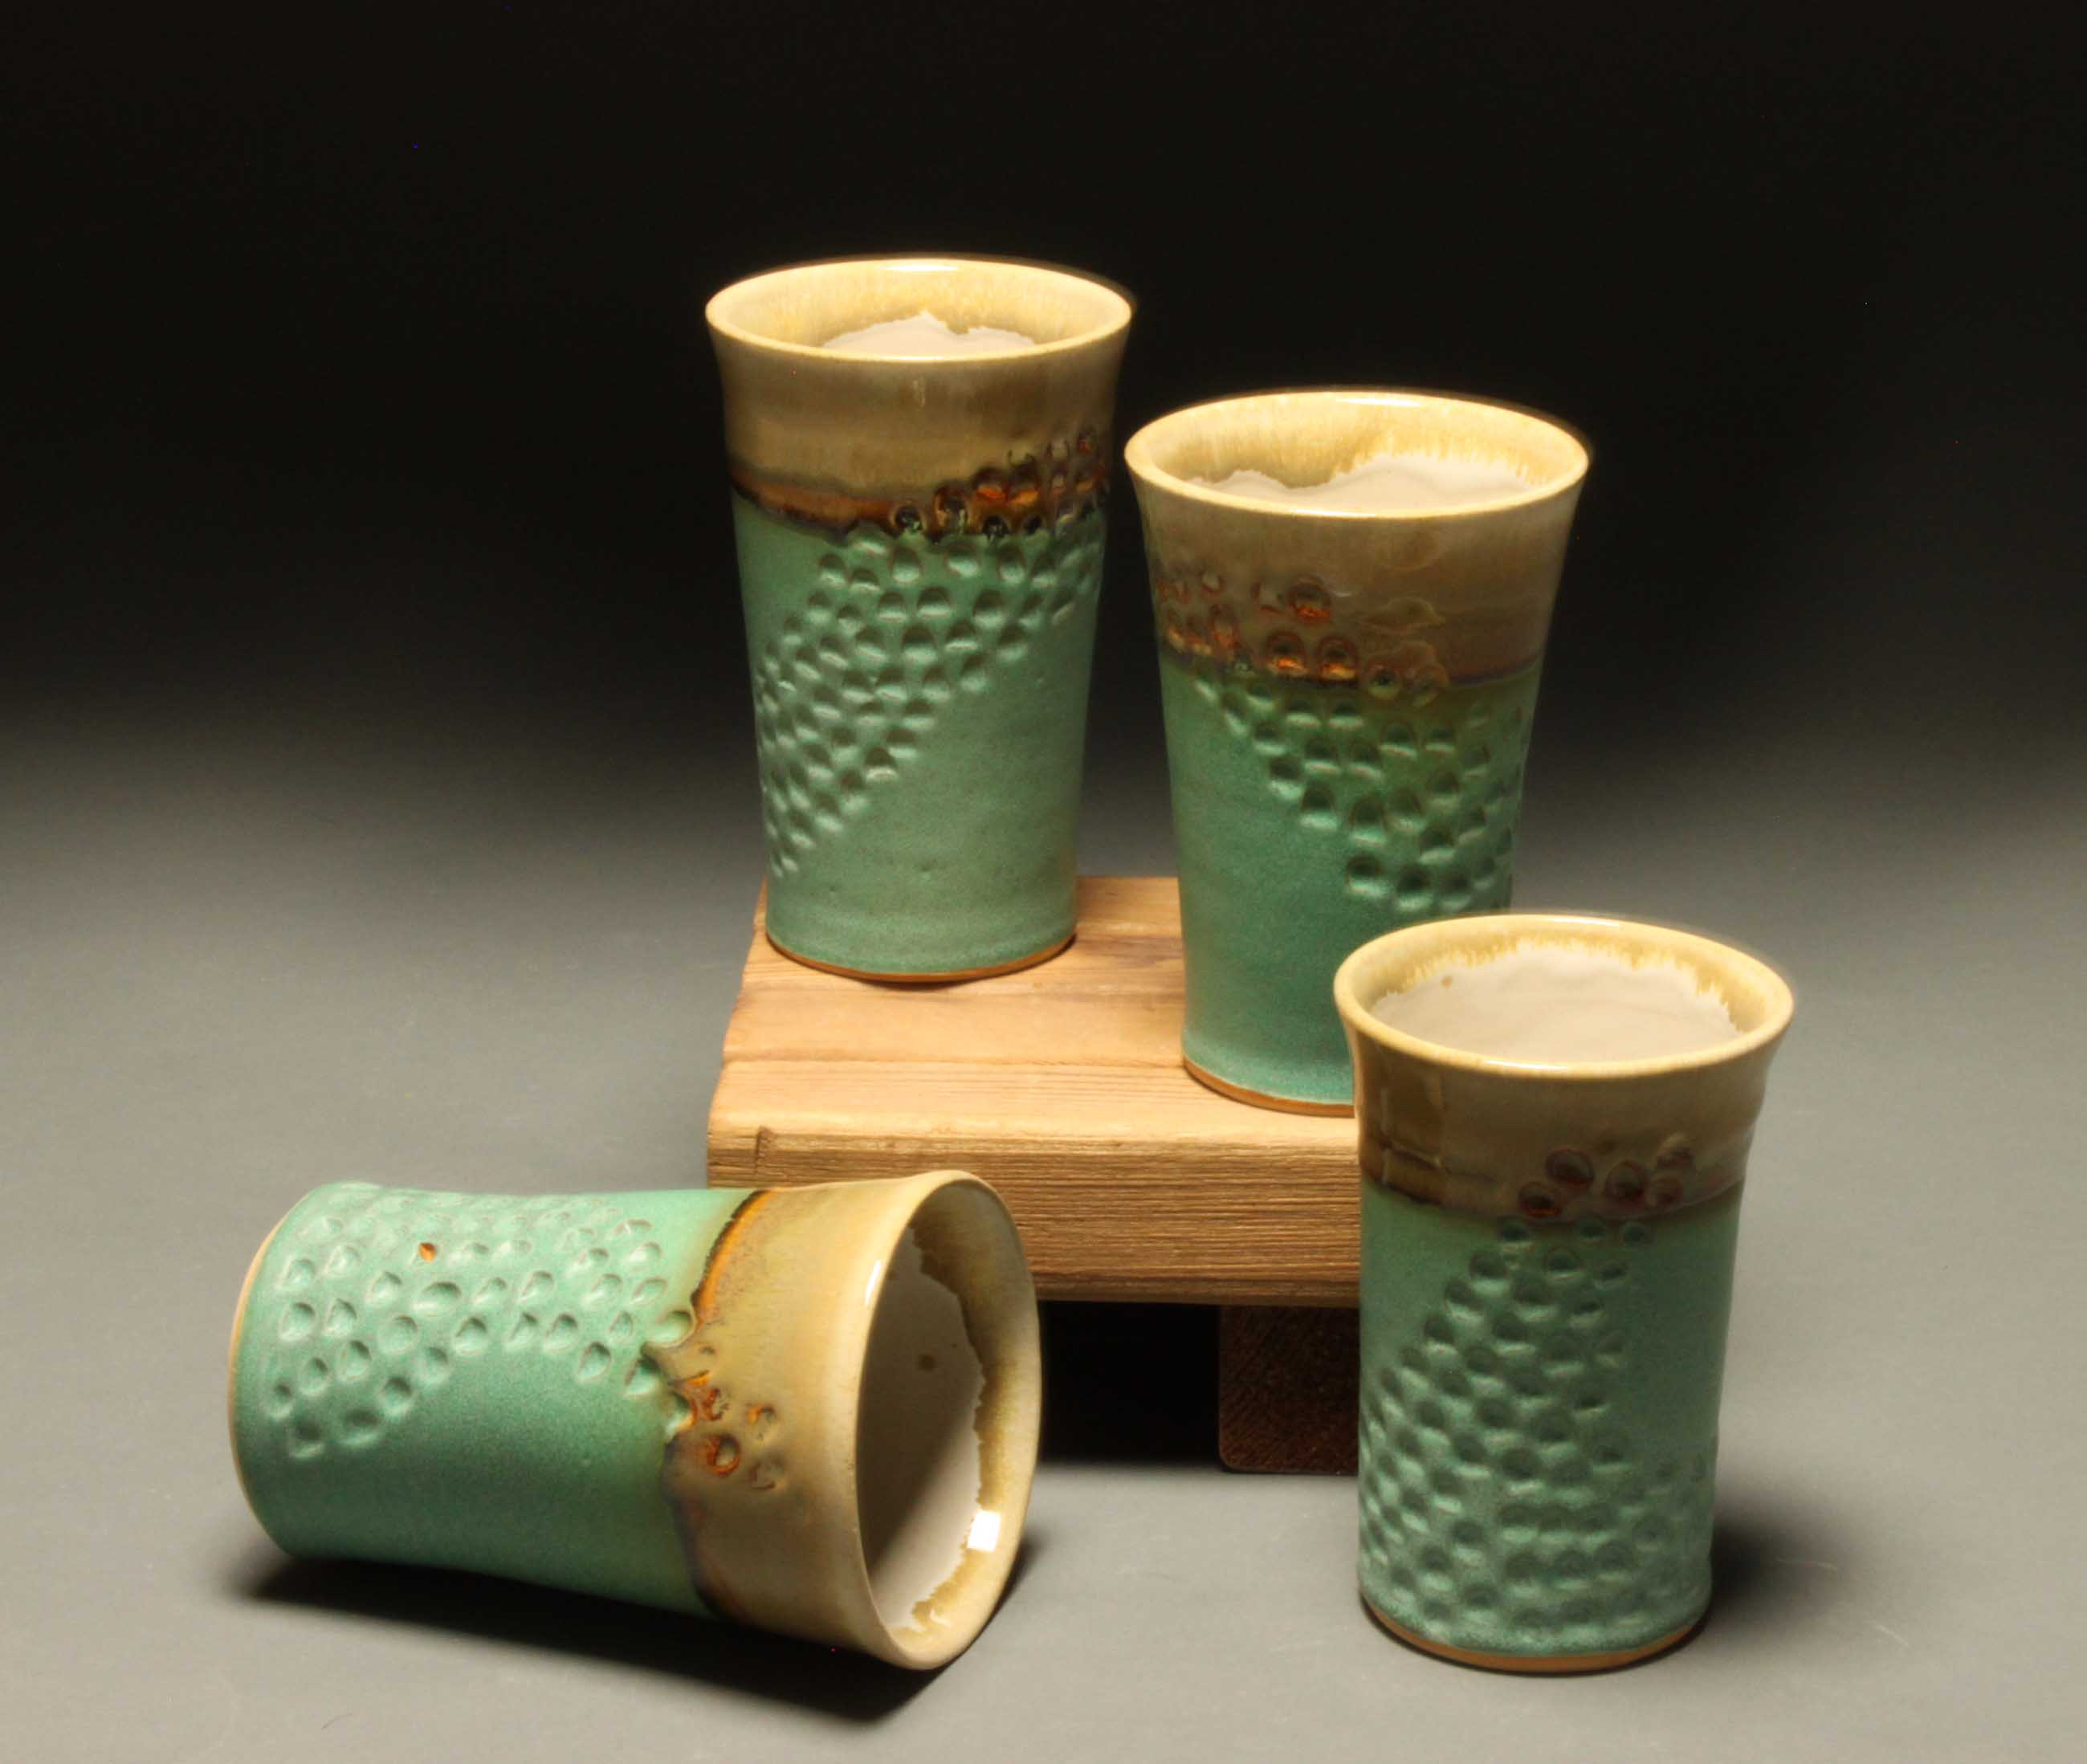 Cups by Dearing Davis